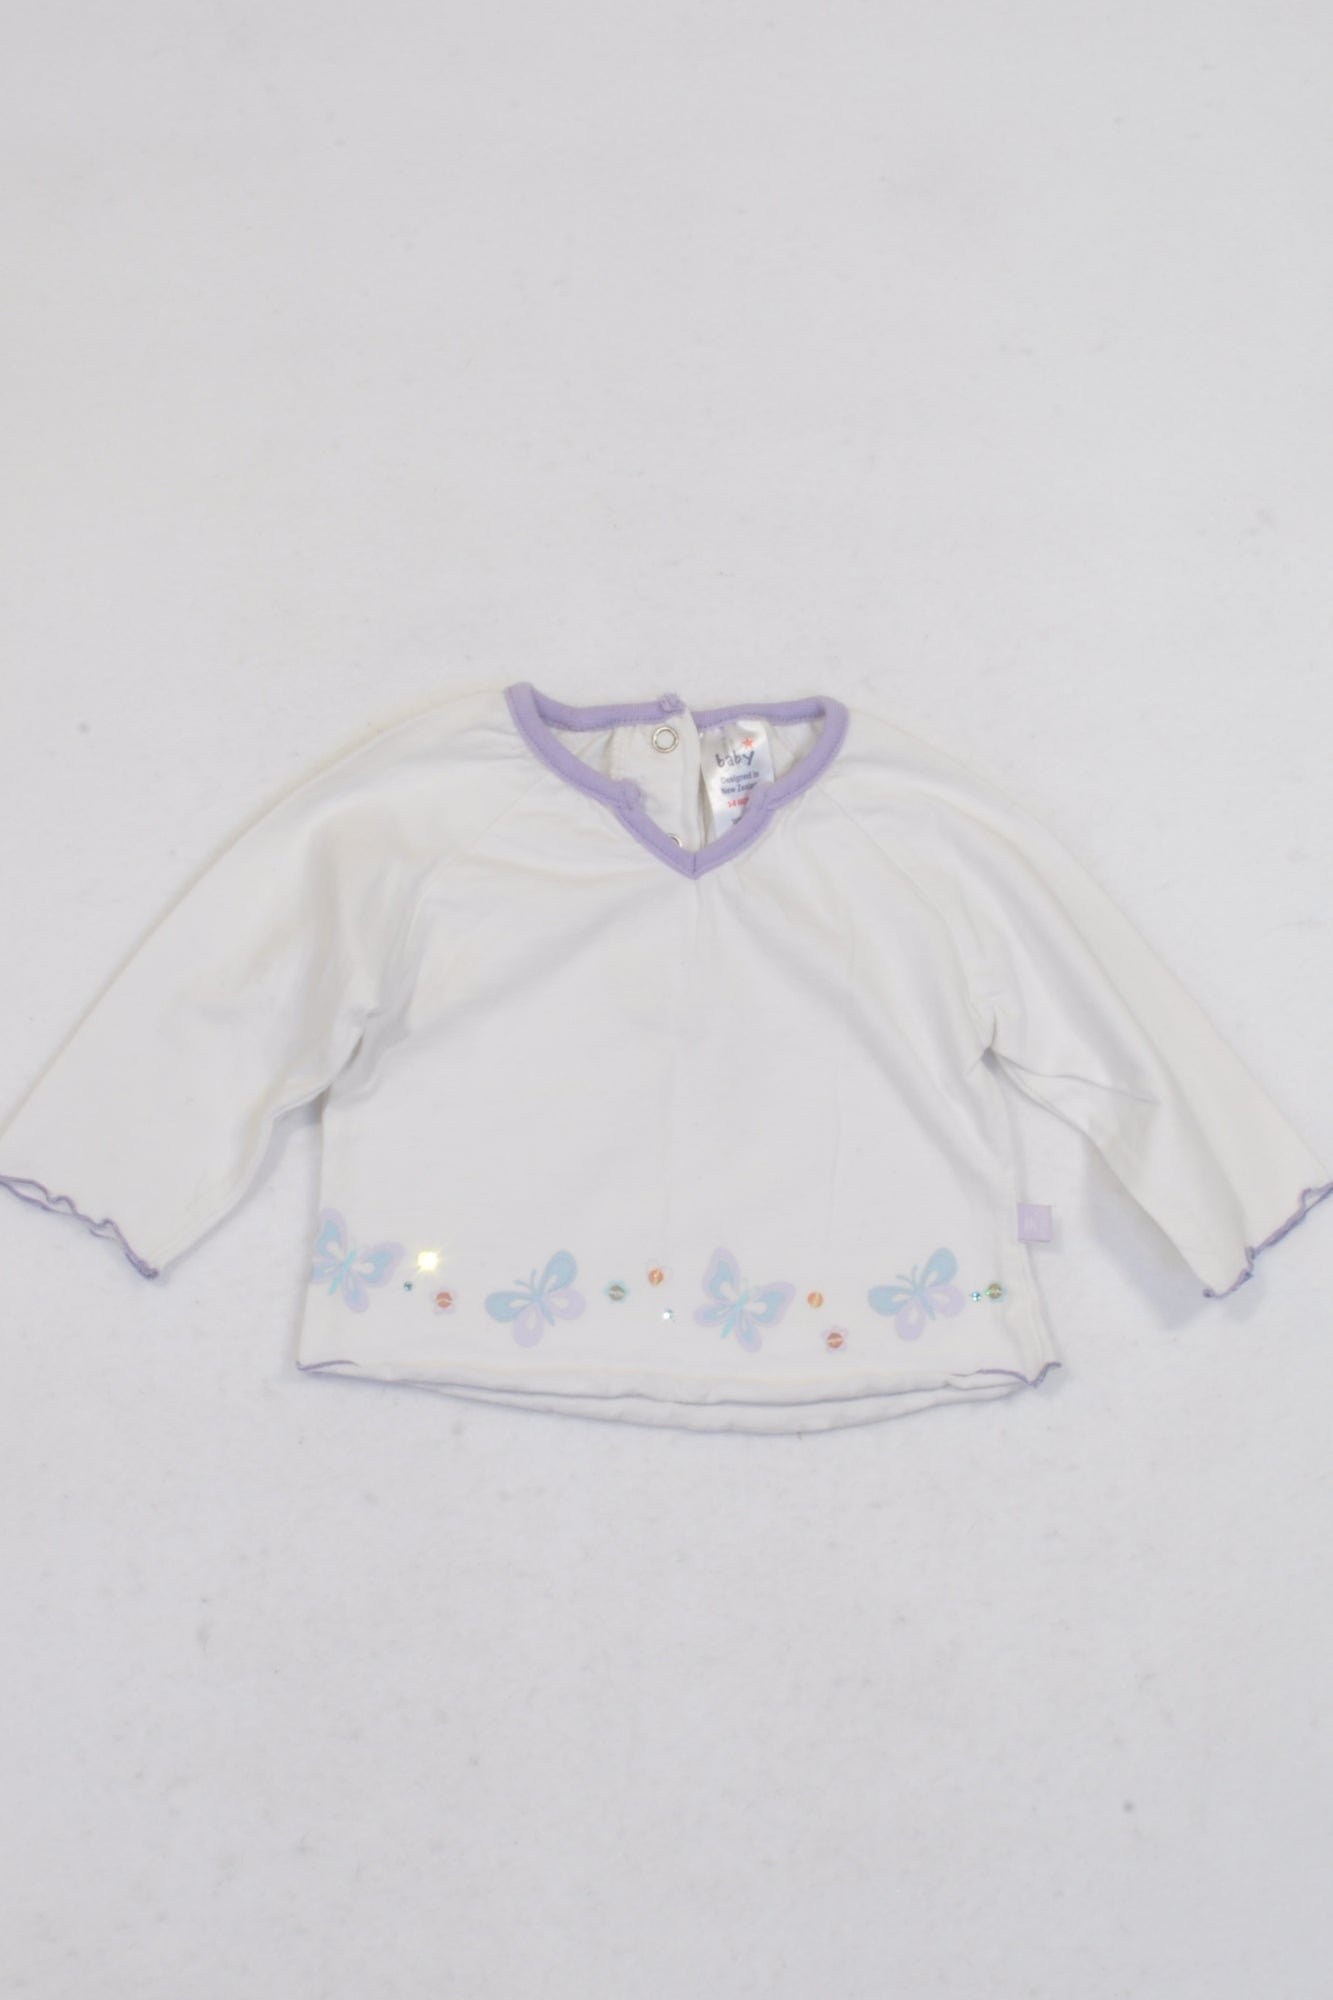 JK New Zealand White & Purple Trim Butterfly T-shirt Girls 3-6 months